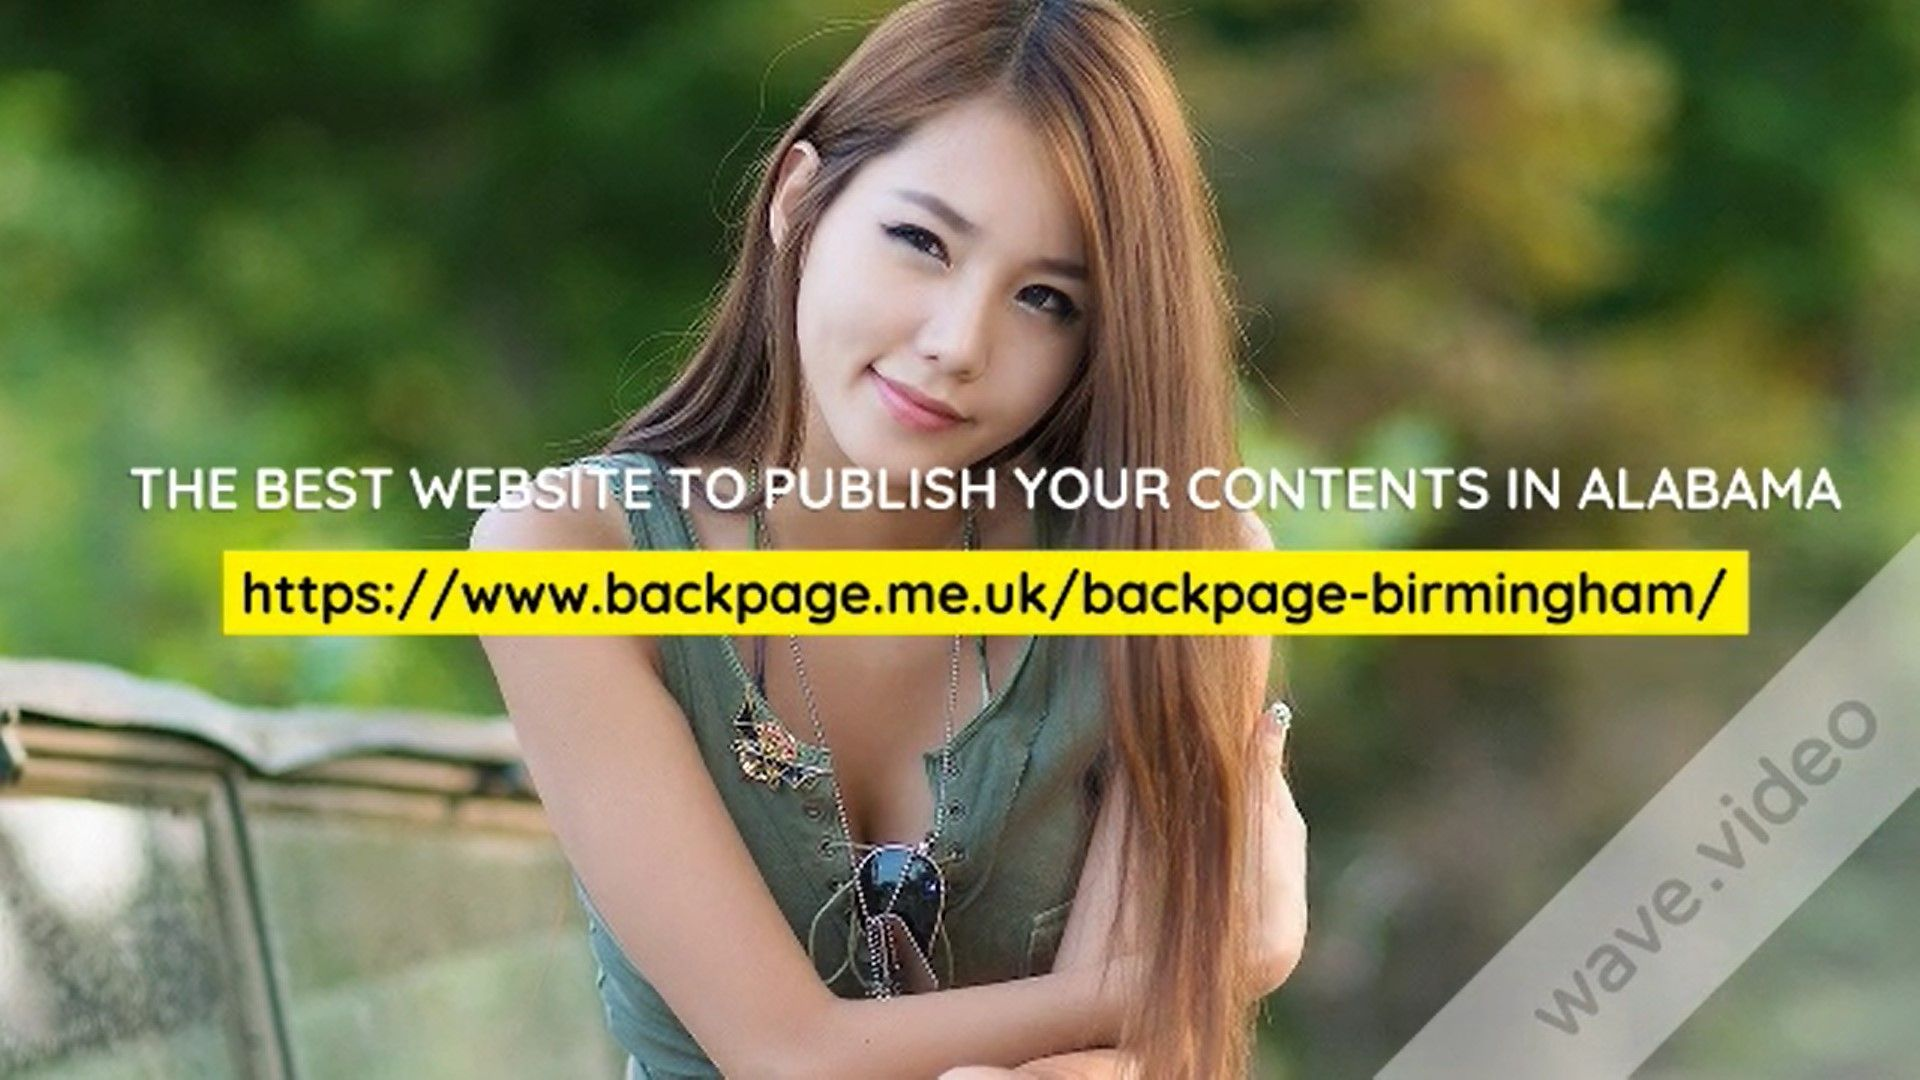 Birmingham backpage uk